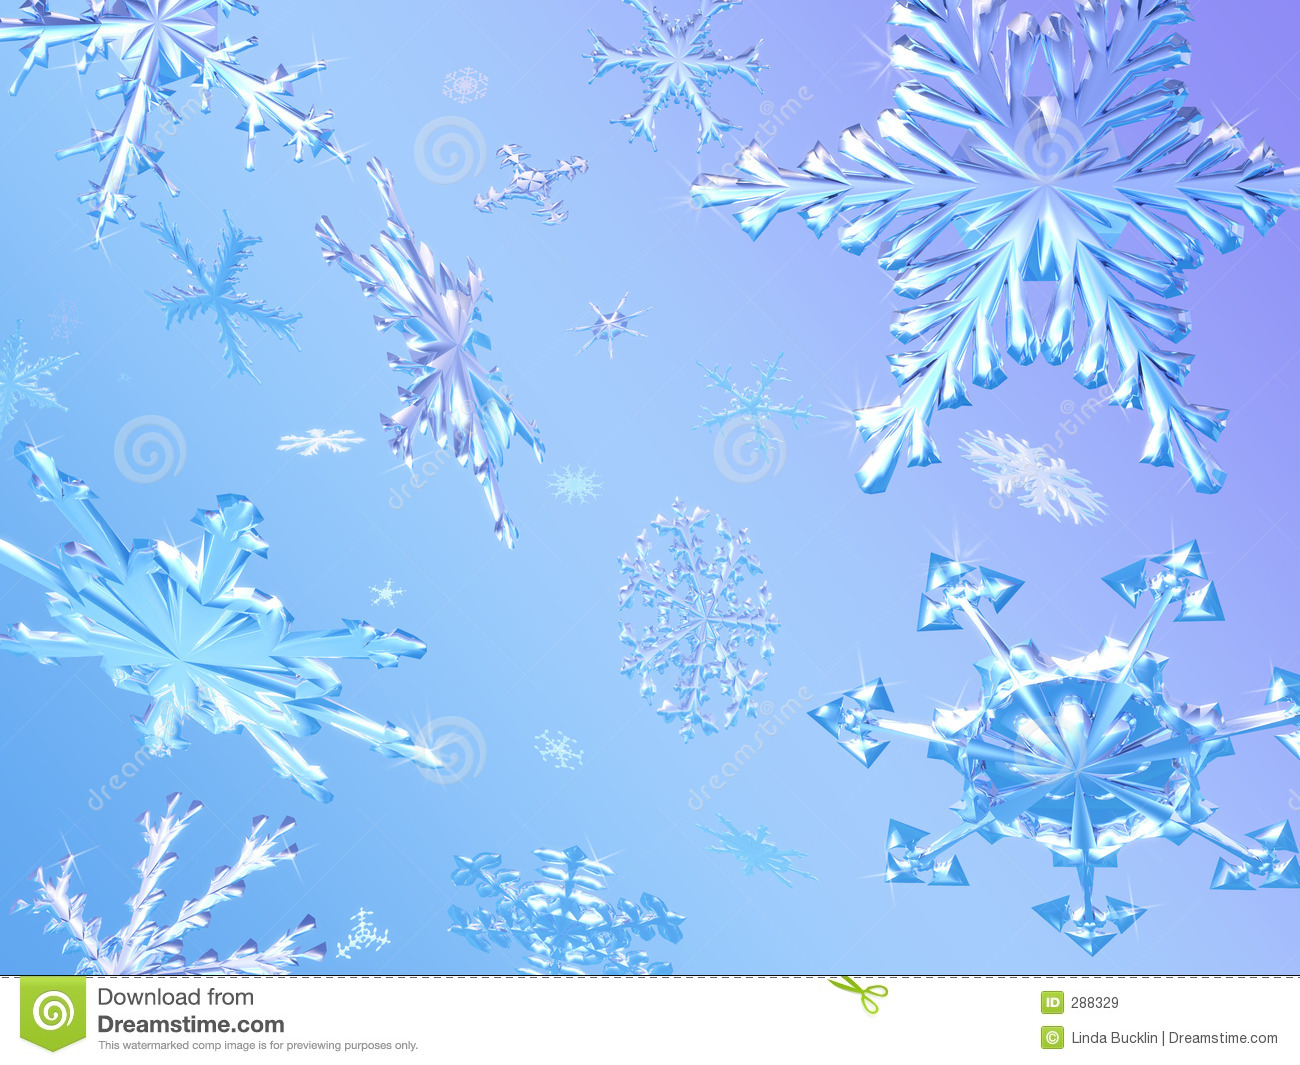 Free Animated Falling Snow Wallpaper Snowflakes Falling Stock Illustration Illustration Of